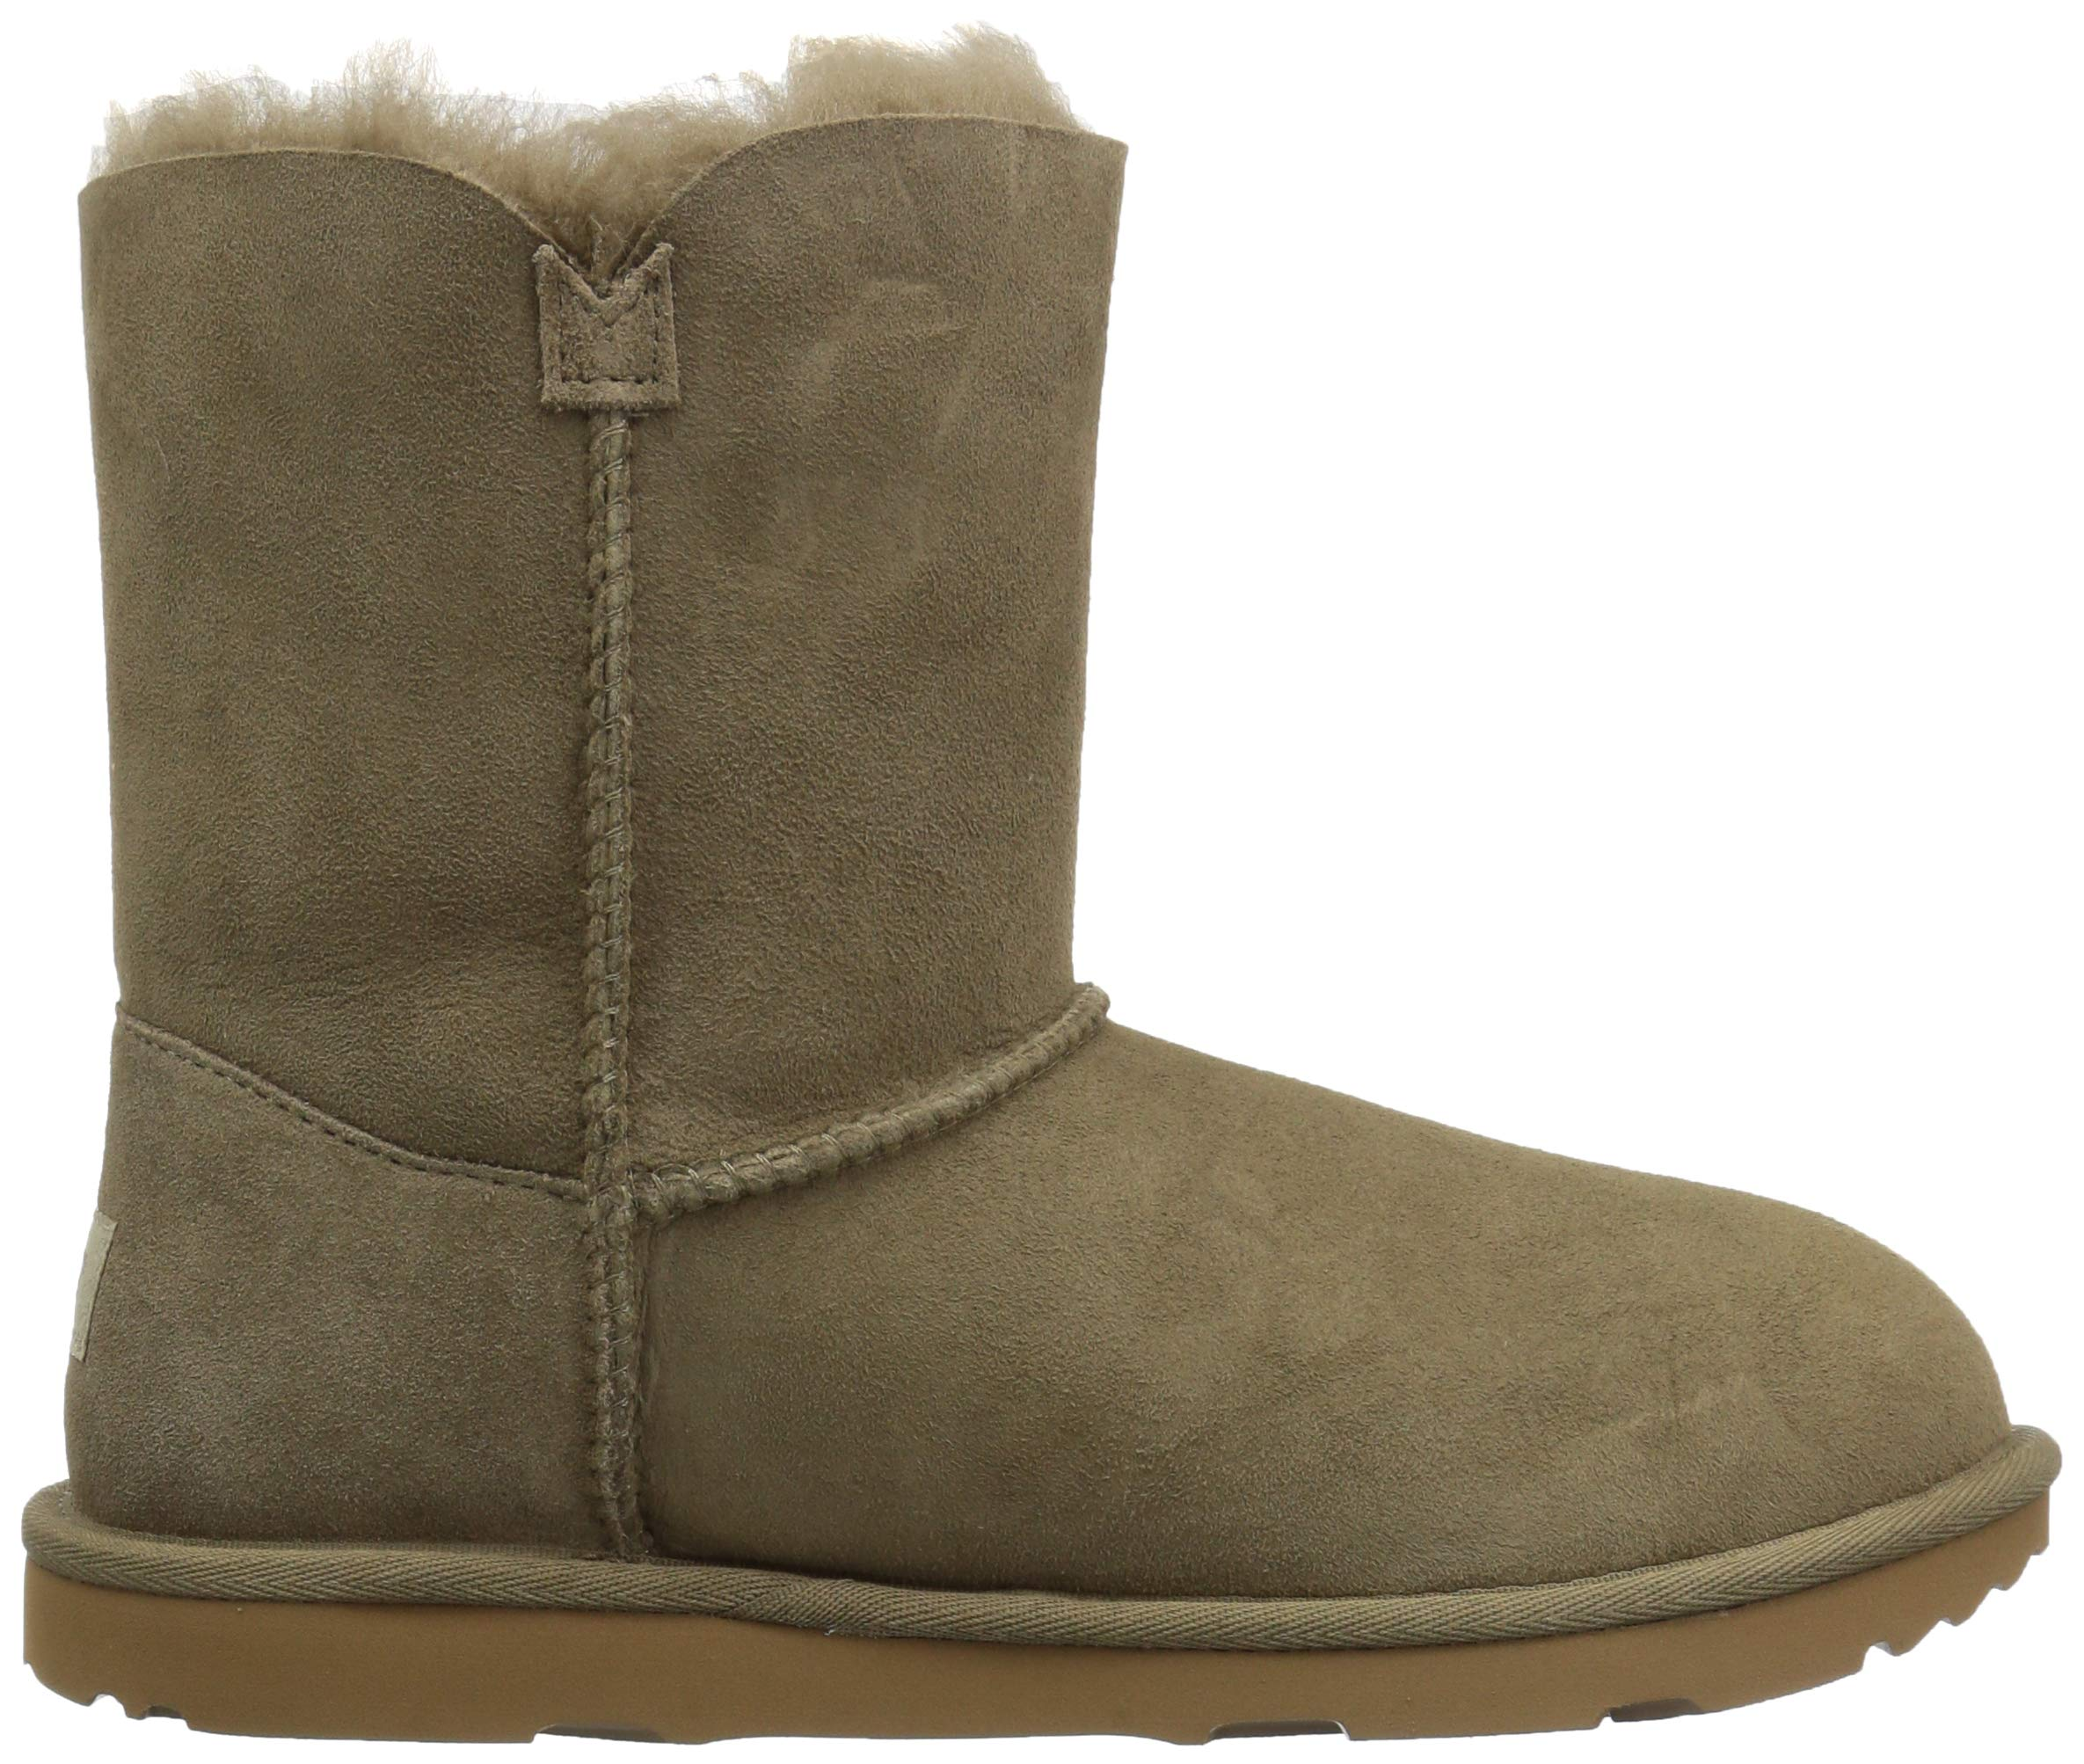 UGG Unisex K Bailey Button II Fashion Boot, Antilope, 13 M US Little Kid by UGG (Image #7)